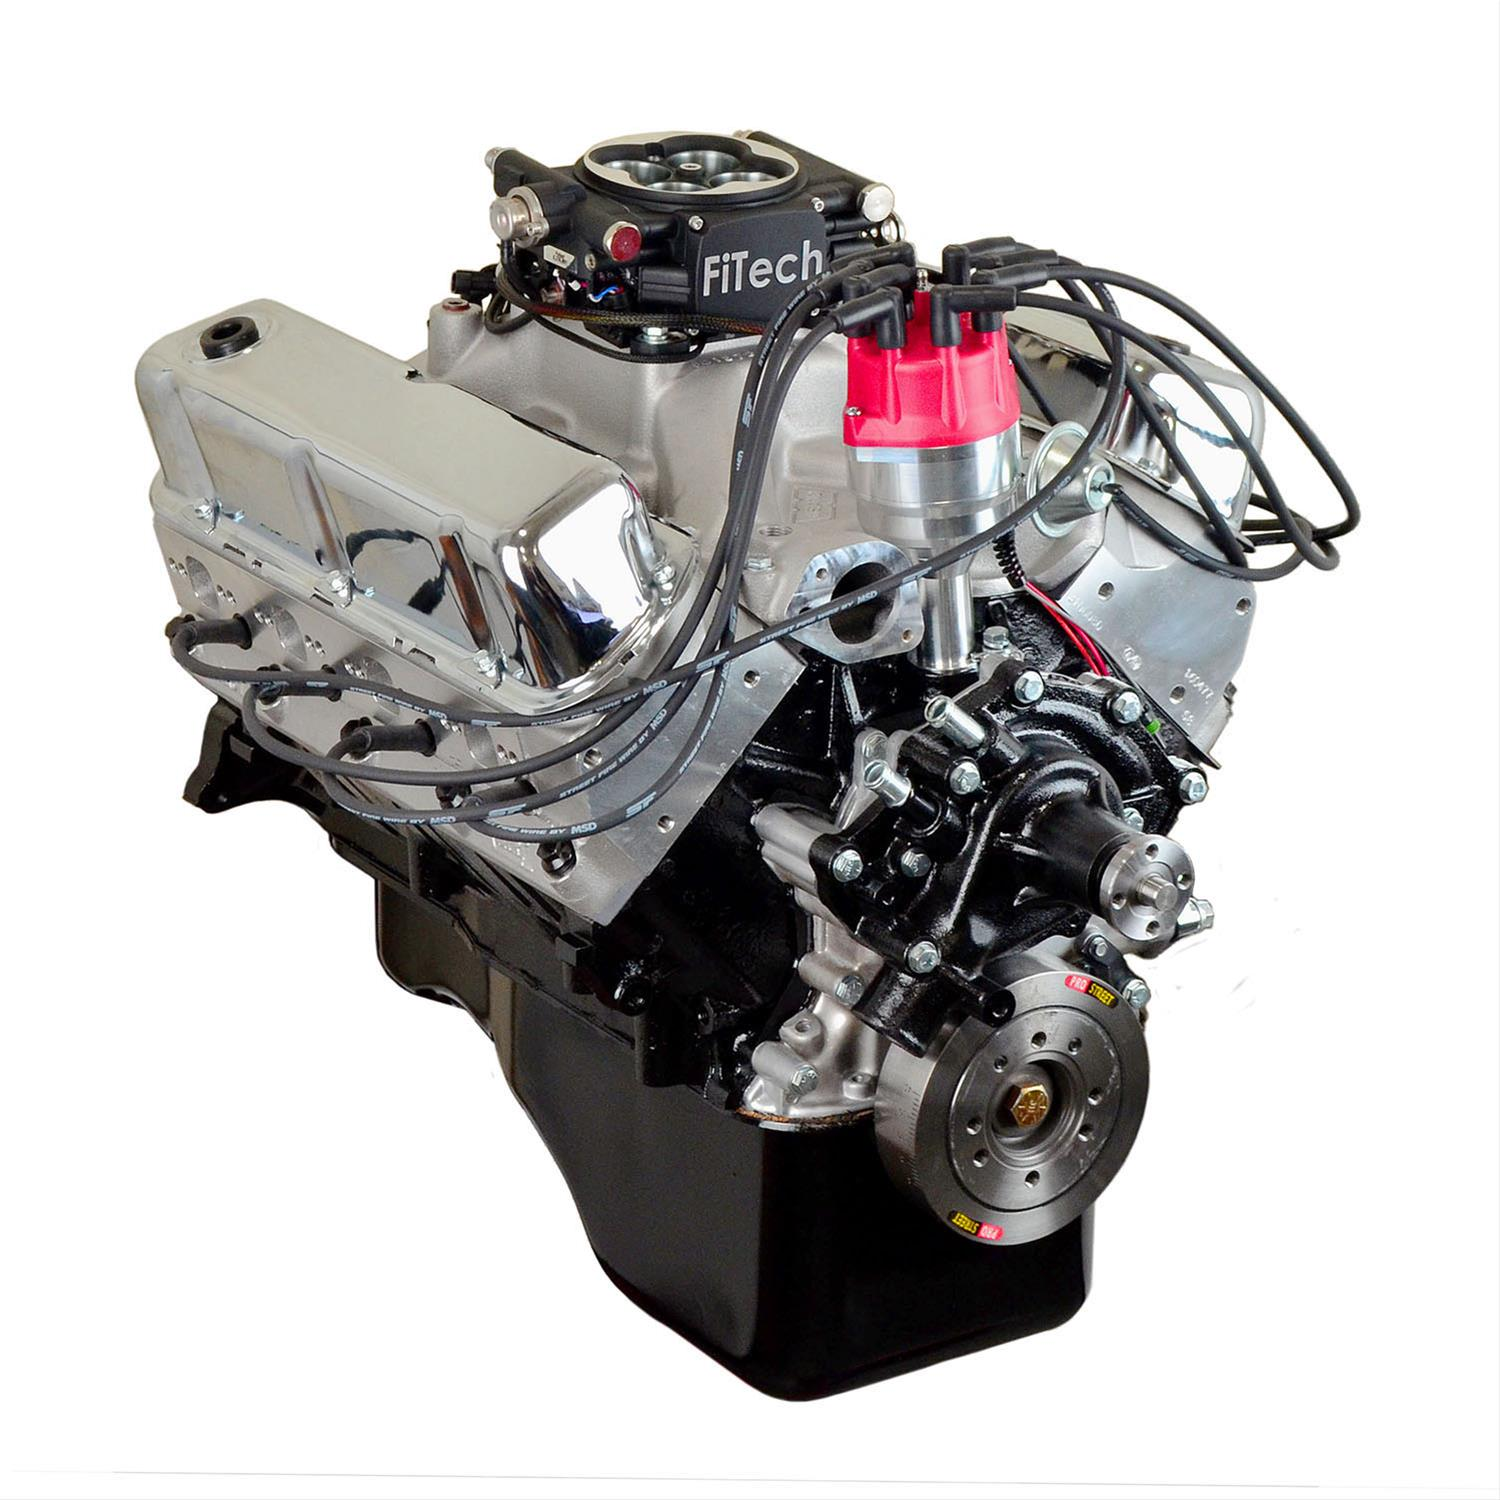 ATK High Performance Ford 408 Stroker 430 HP Stage 3 Long Block Crate  Engines with EFI HP21C-EFI